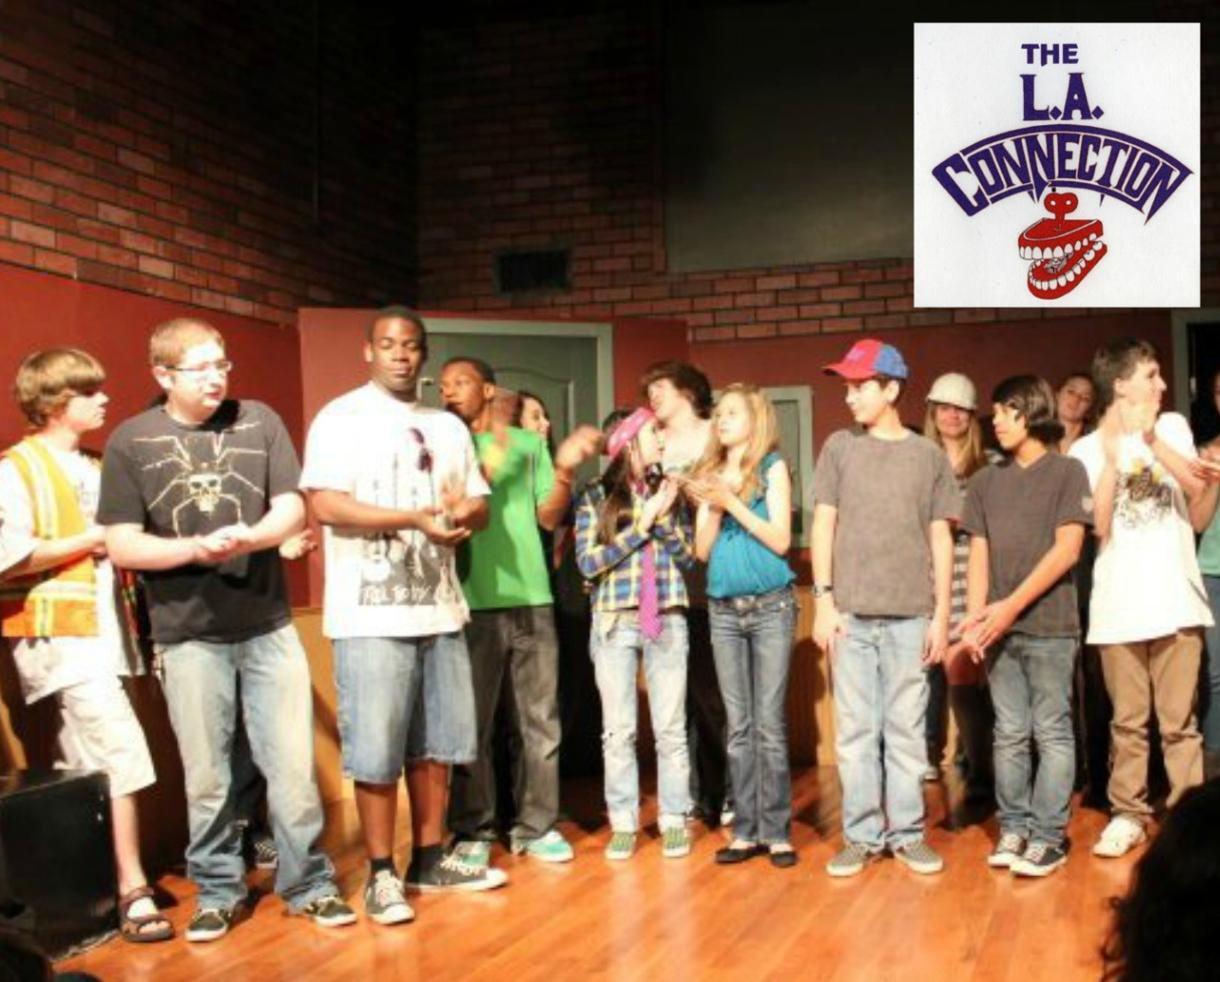 $49 for Four, 4-Hour Kids/Teens Comedy Classes + 2 Show Tickets OR $10 for 2 Show Tickets Only at LA Connection - Burbank! (Up to 68% Off)